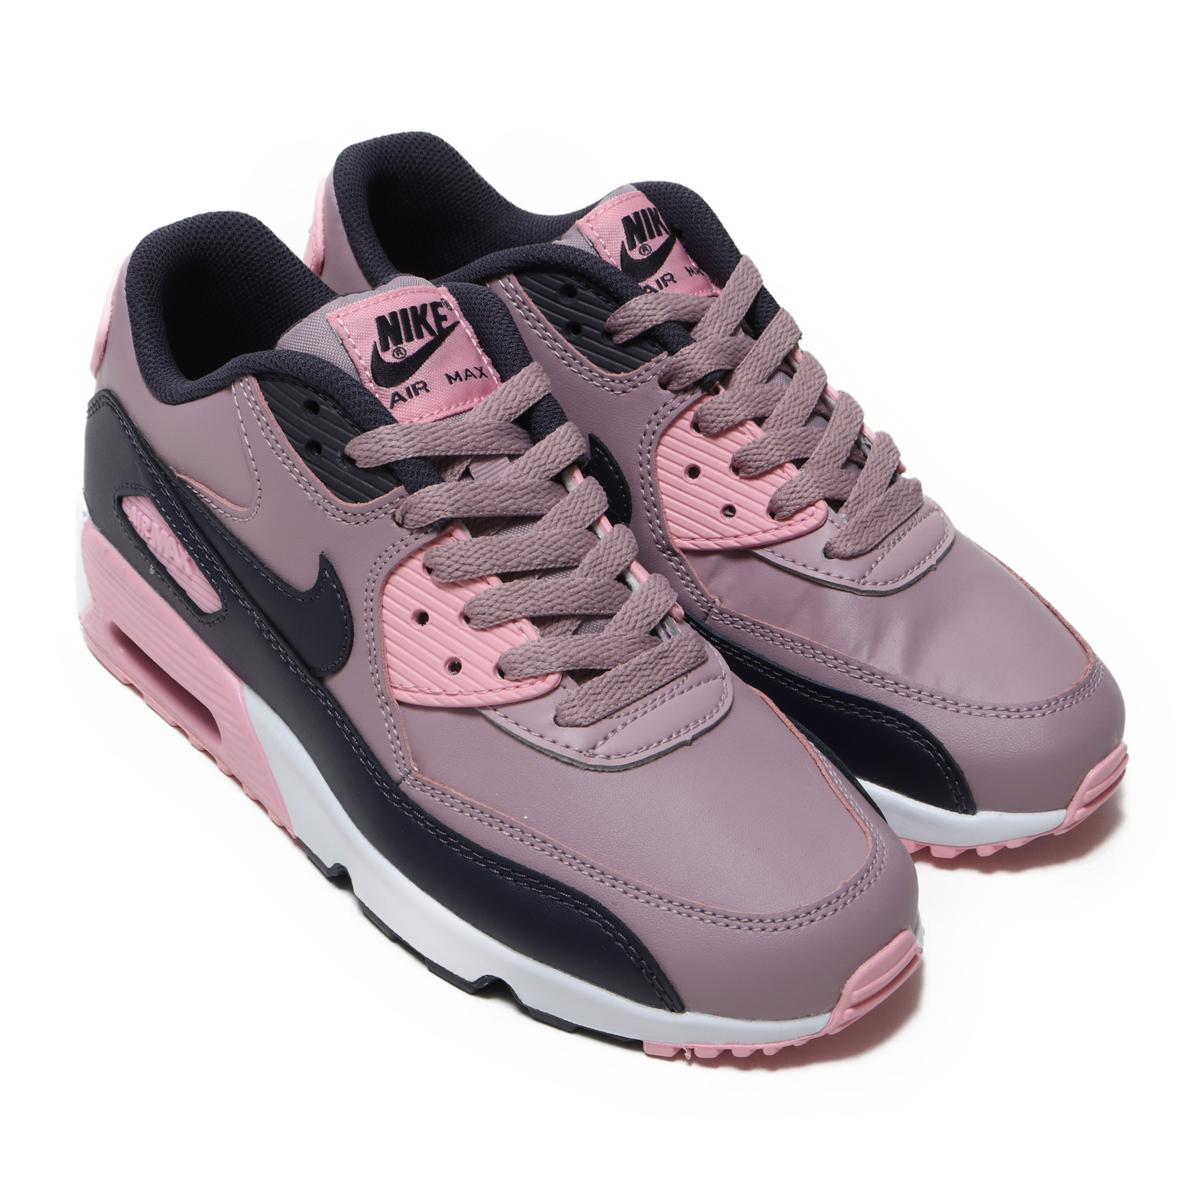 c31114641 ... top quality nike air max 90 ltr gs kie ney amax 90 ltr gs elemental rose